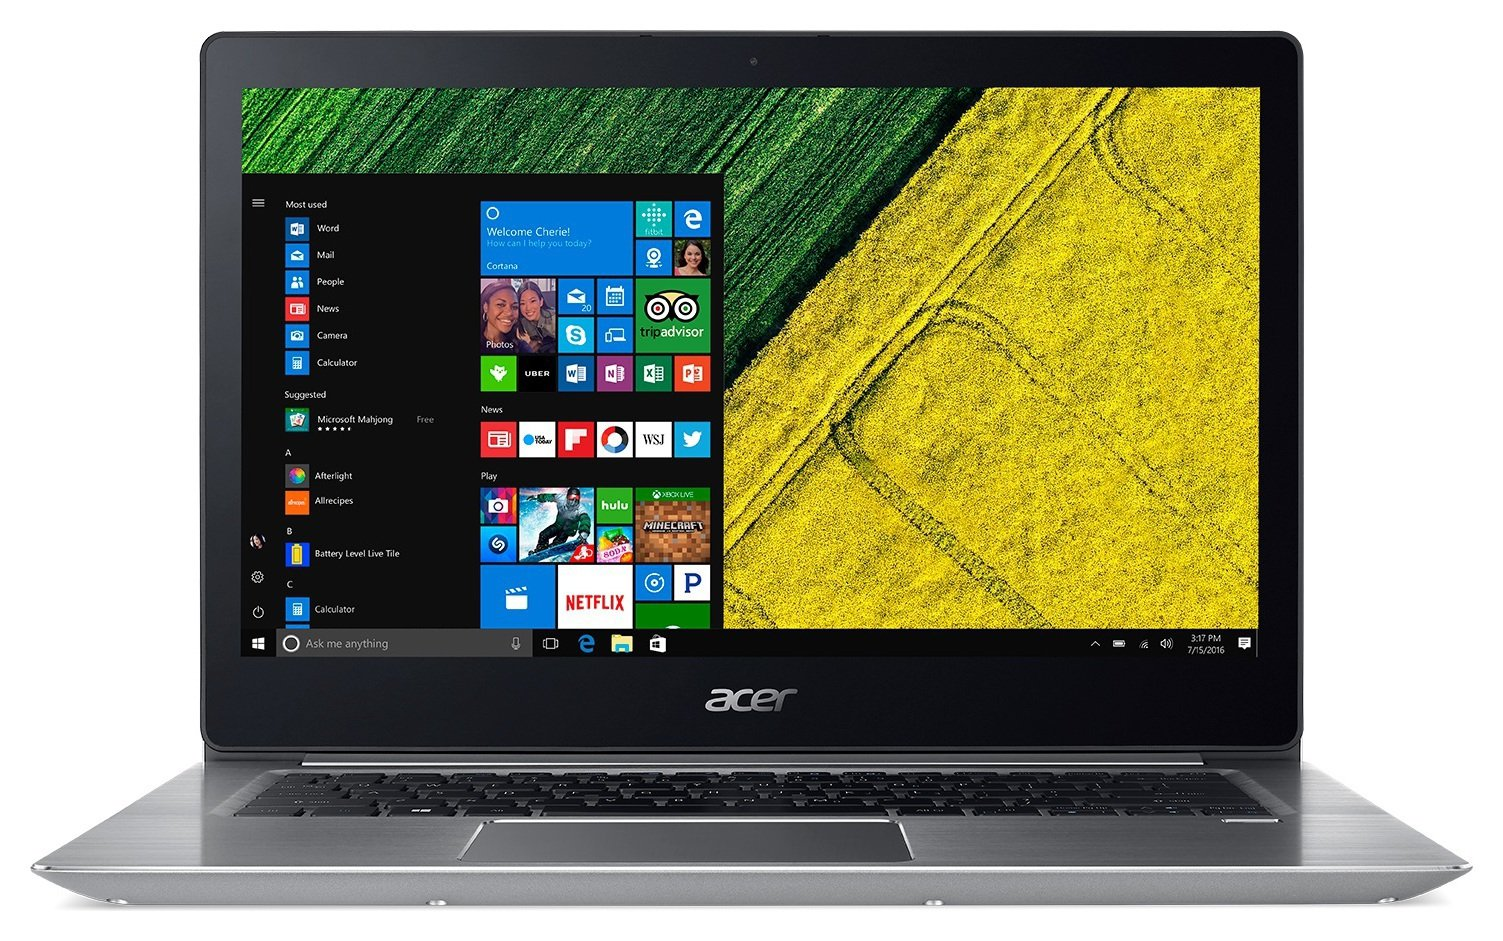 Acer Acer Swift 3 14 Inch I5 8GB 256GB Laptop - Silver